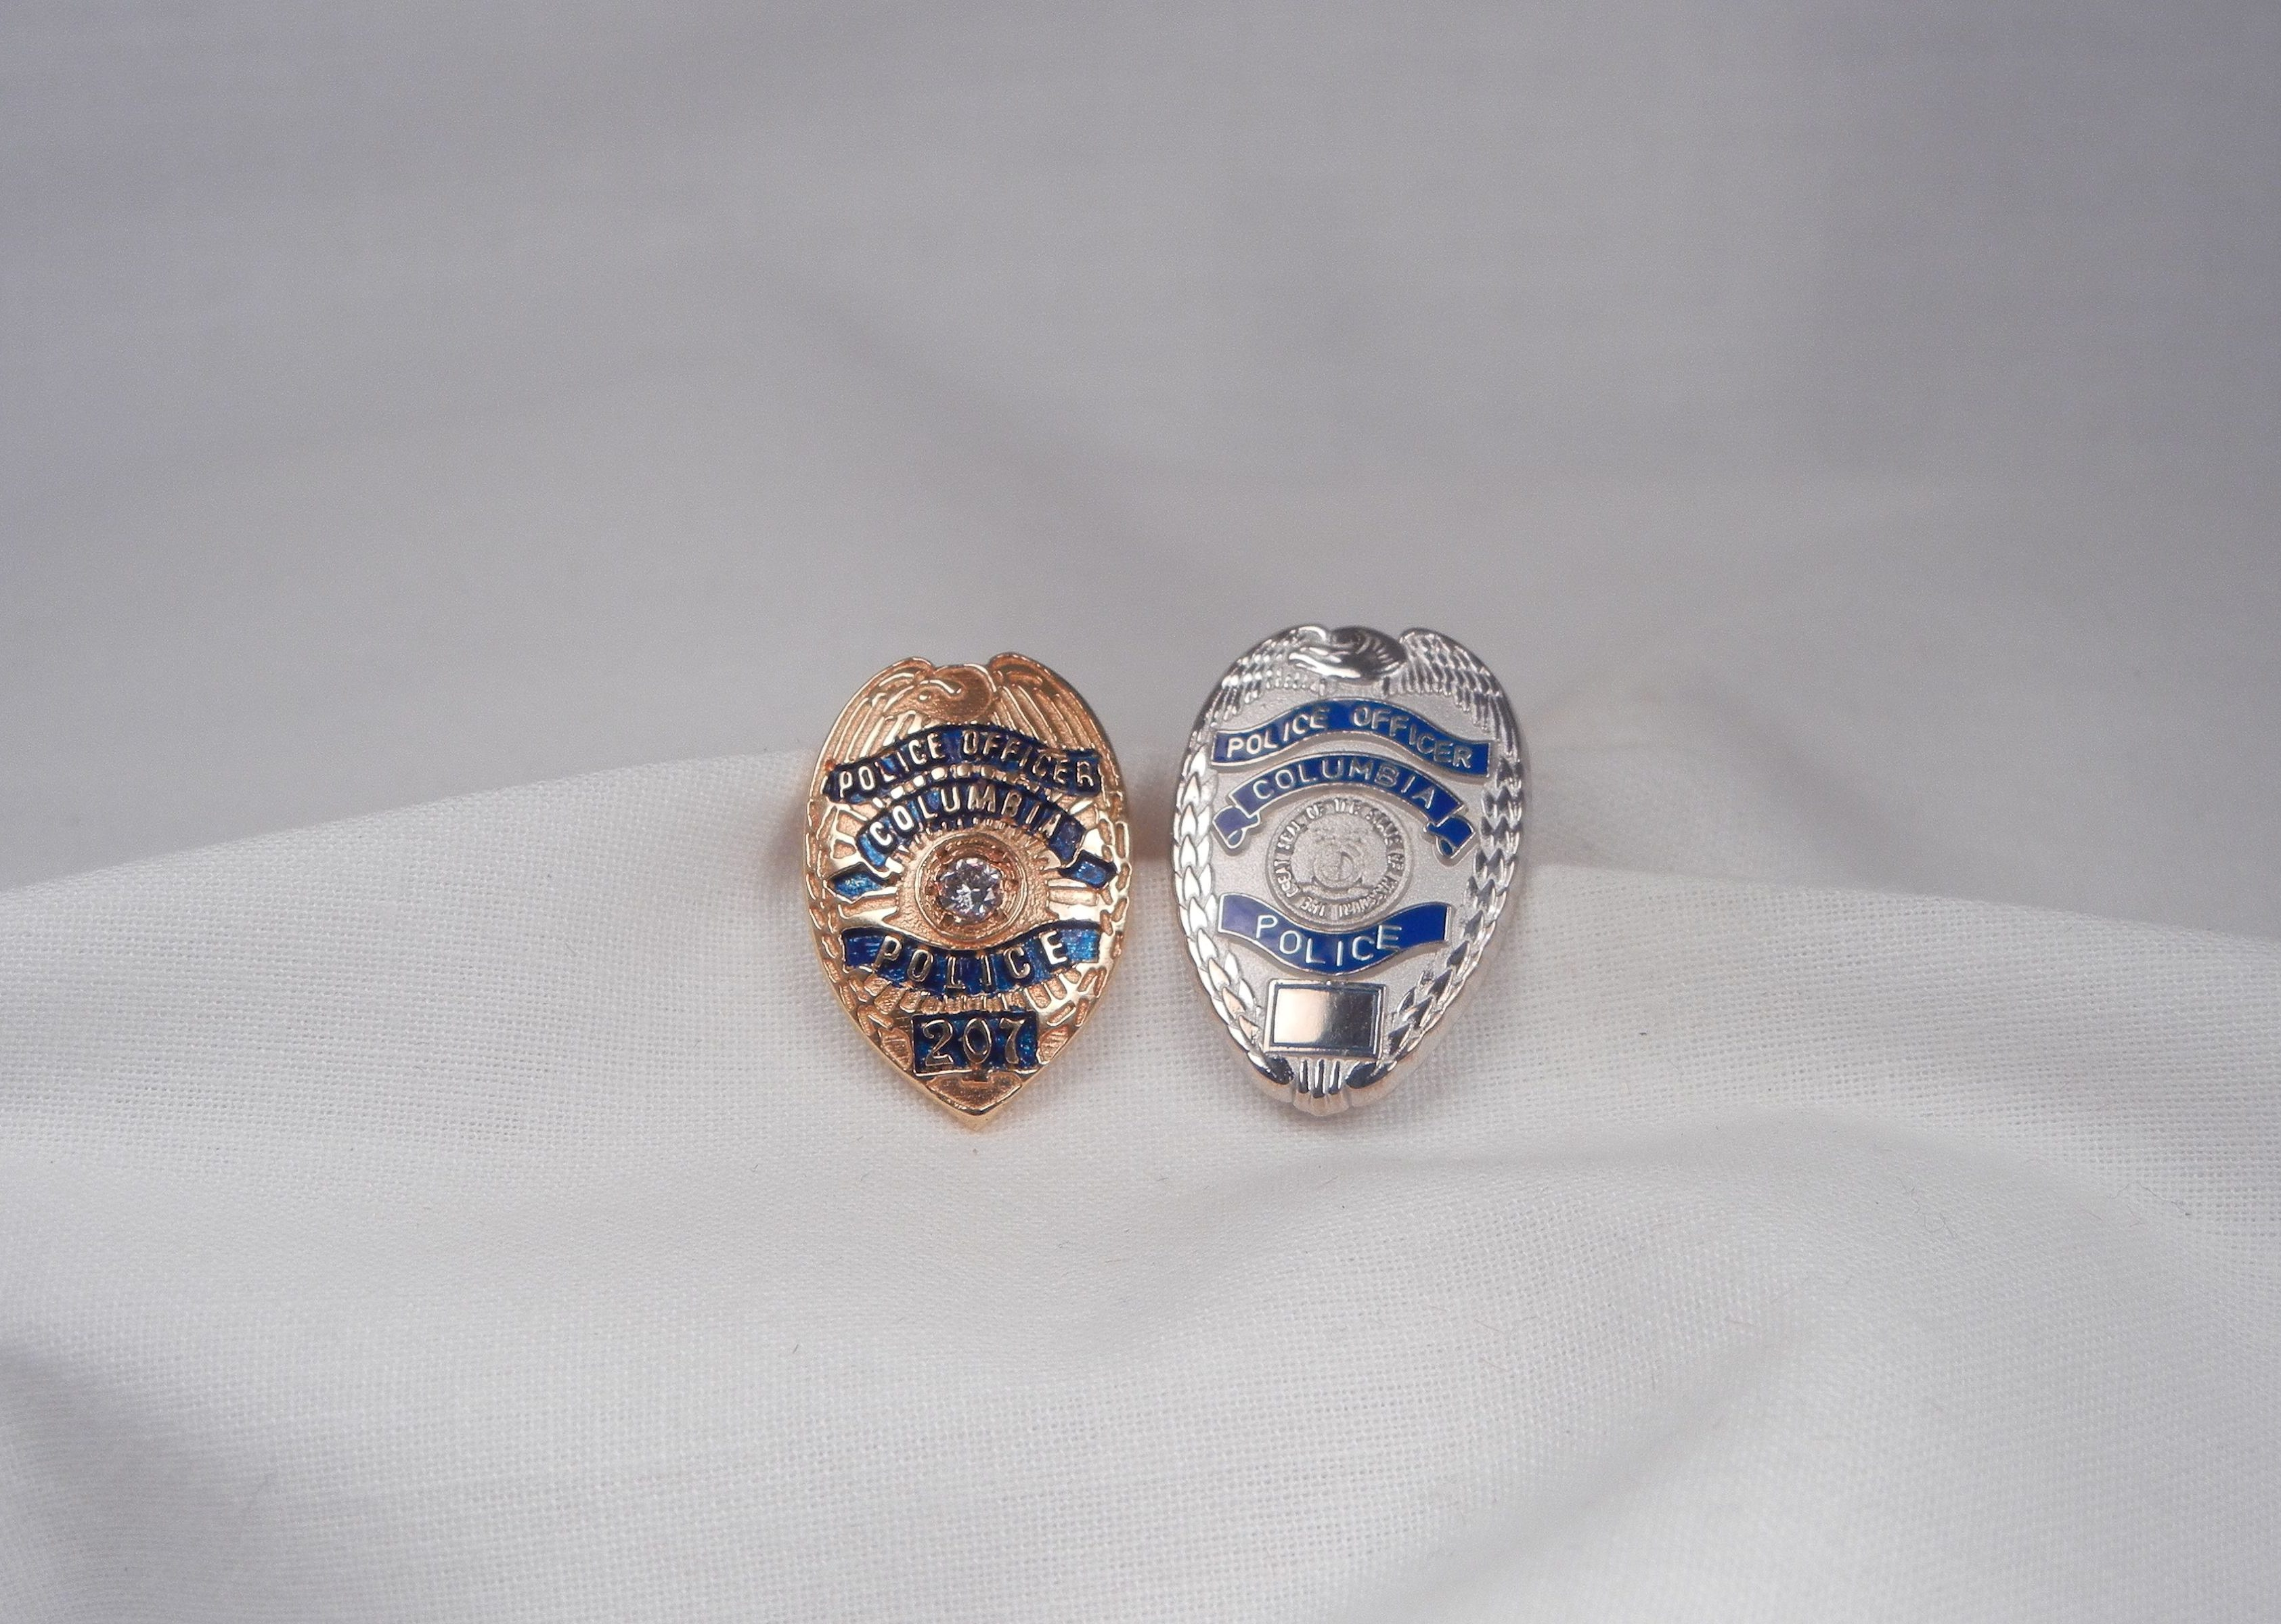 police patriotic line thin and charm blue jewelry badge heart insignia pendant